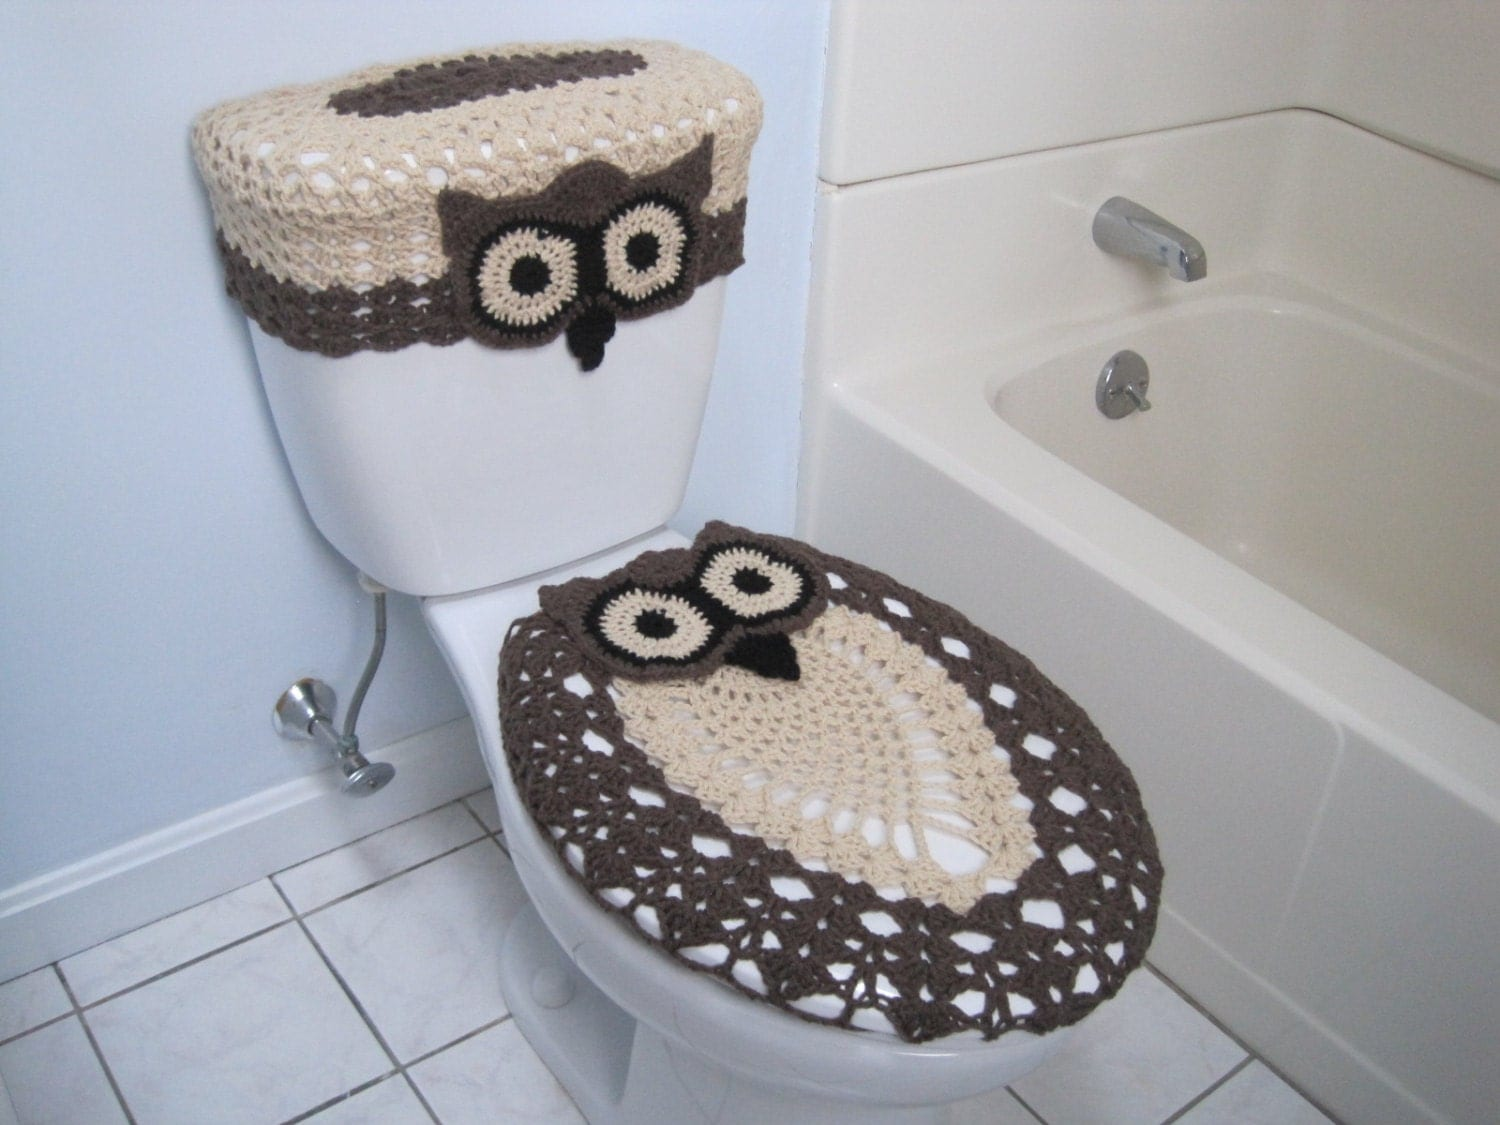 burgundy toilet seat cover.  zoom Crochet Set of Owl Toilet Tank Lid and Seat Covers